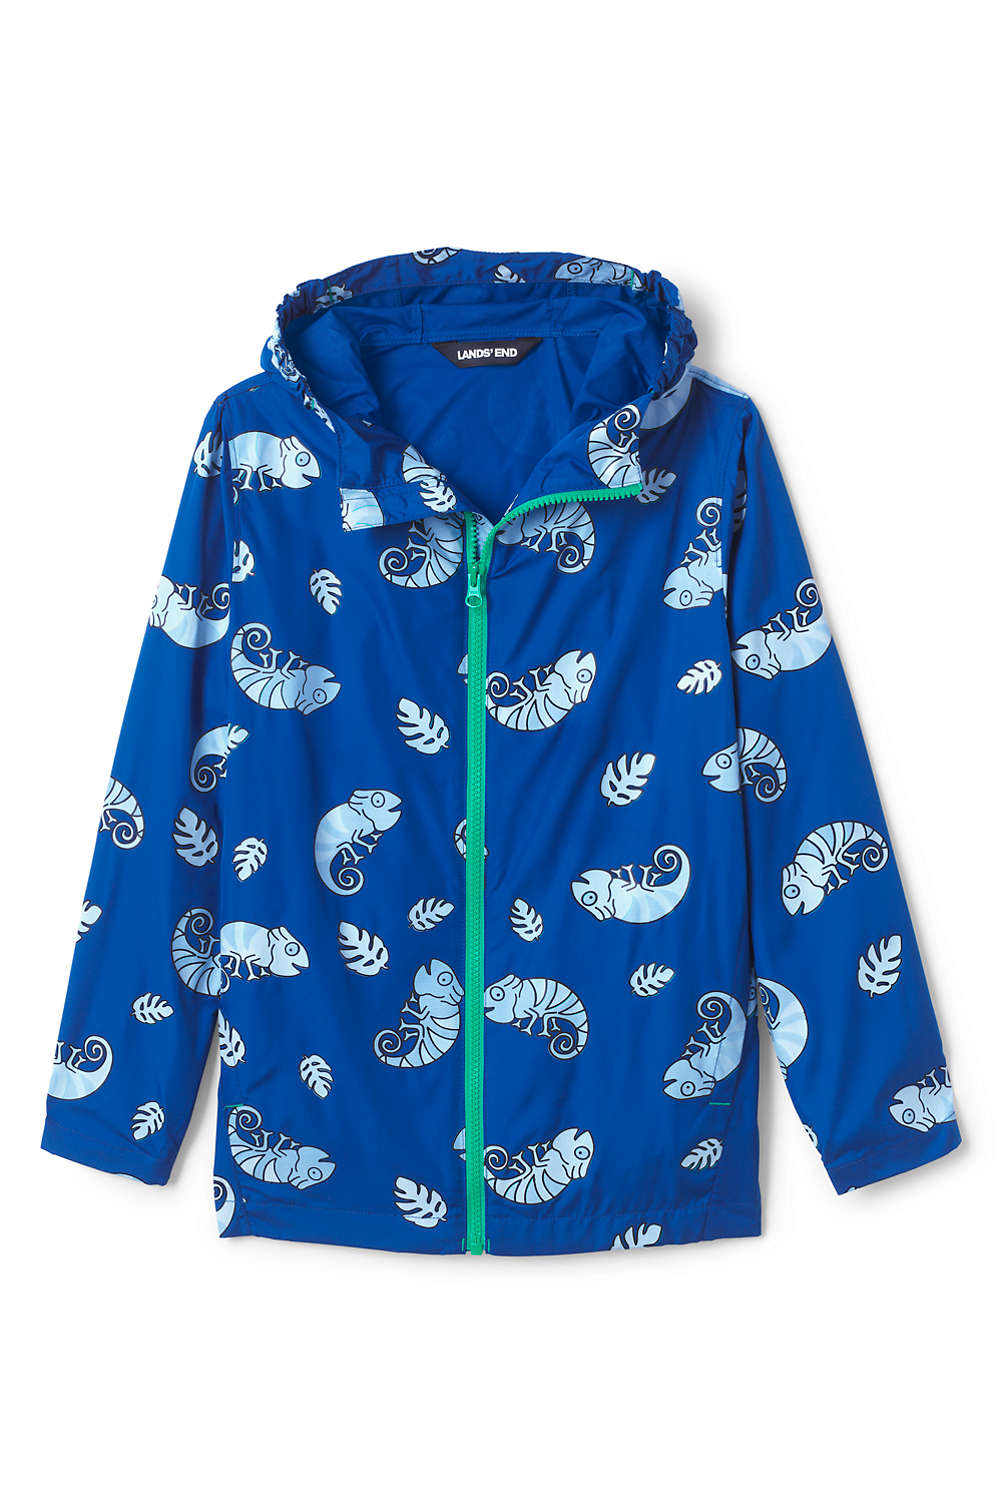 0f777289aae0 Toddler Kids Color Change Rain Jacket from Lands  End